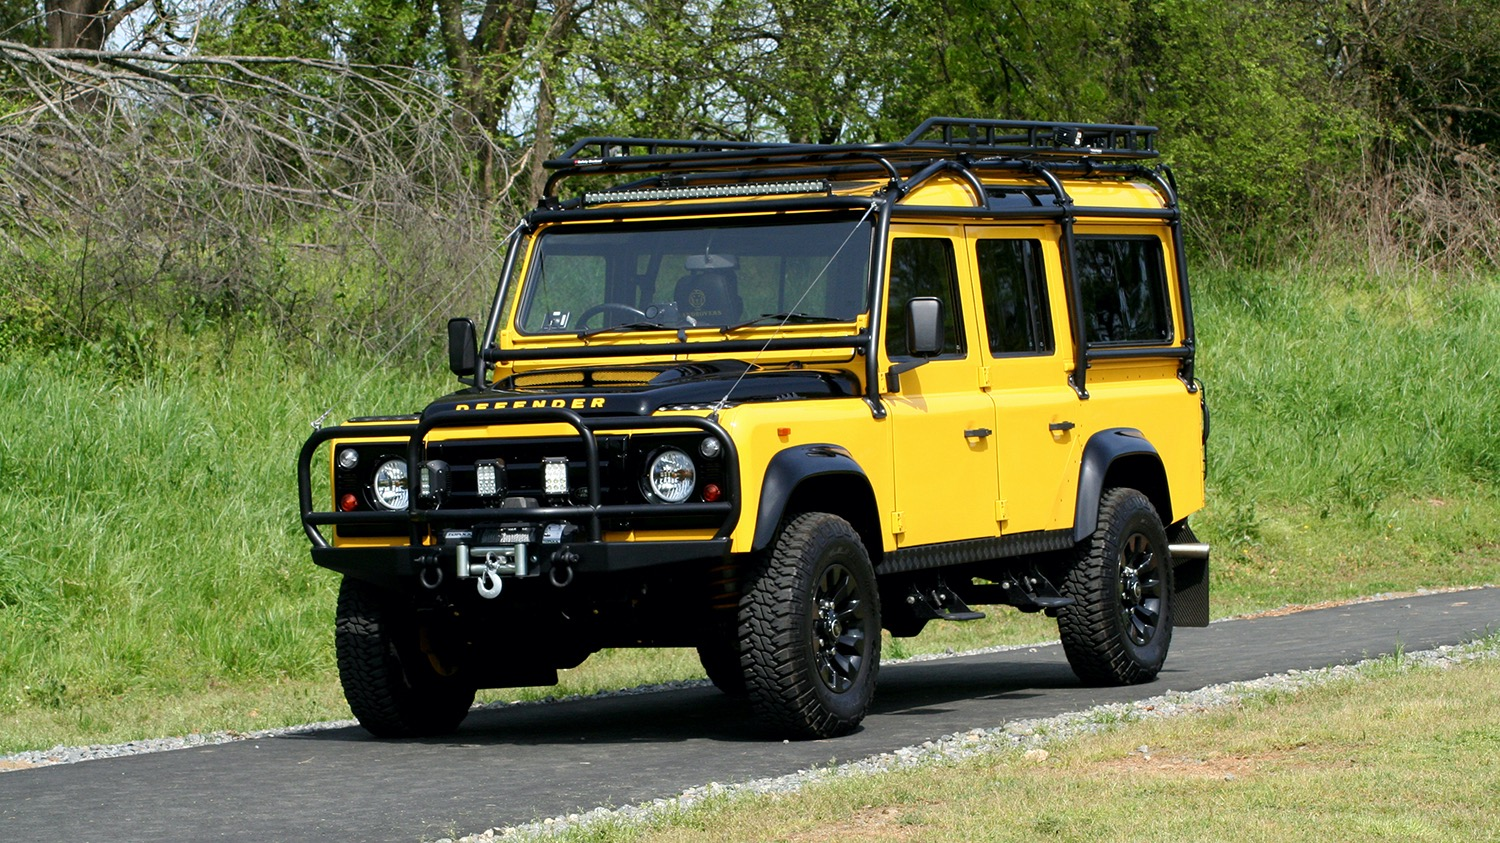 Used 1989 Land Rover Defender 110 4x4 Custom / Fully Restored / Fuel Injected V8 / 5-Spd Man for sale $60,000 at Formula Imports in Charlotte NC 28227 19